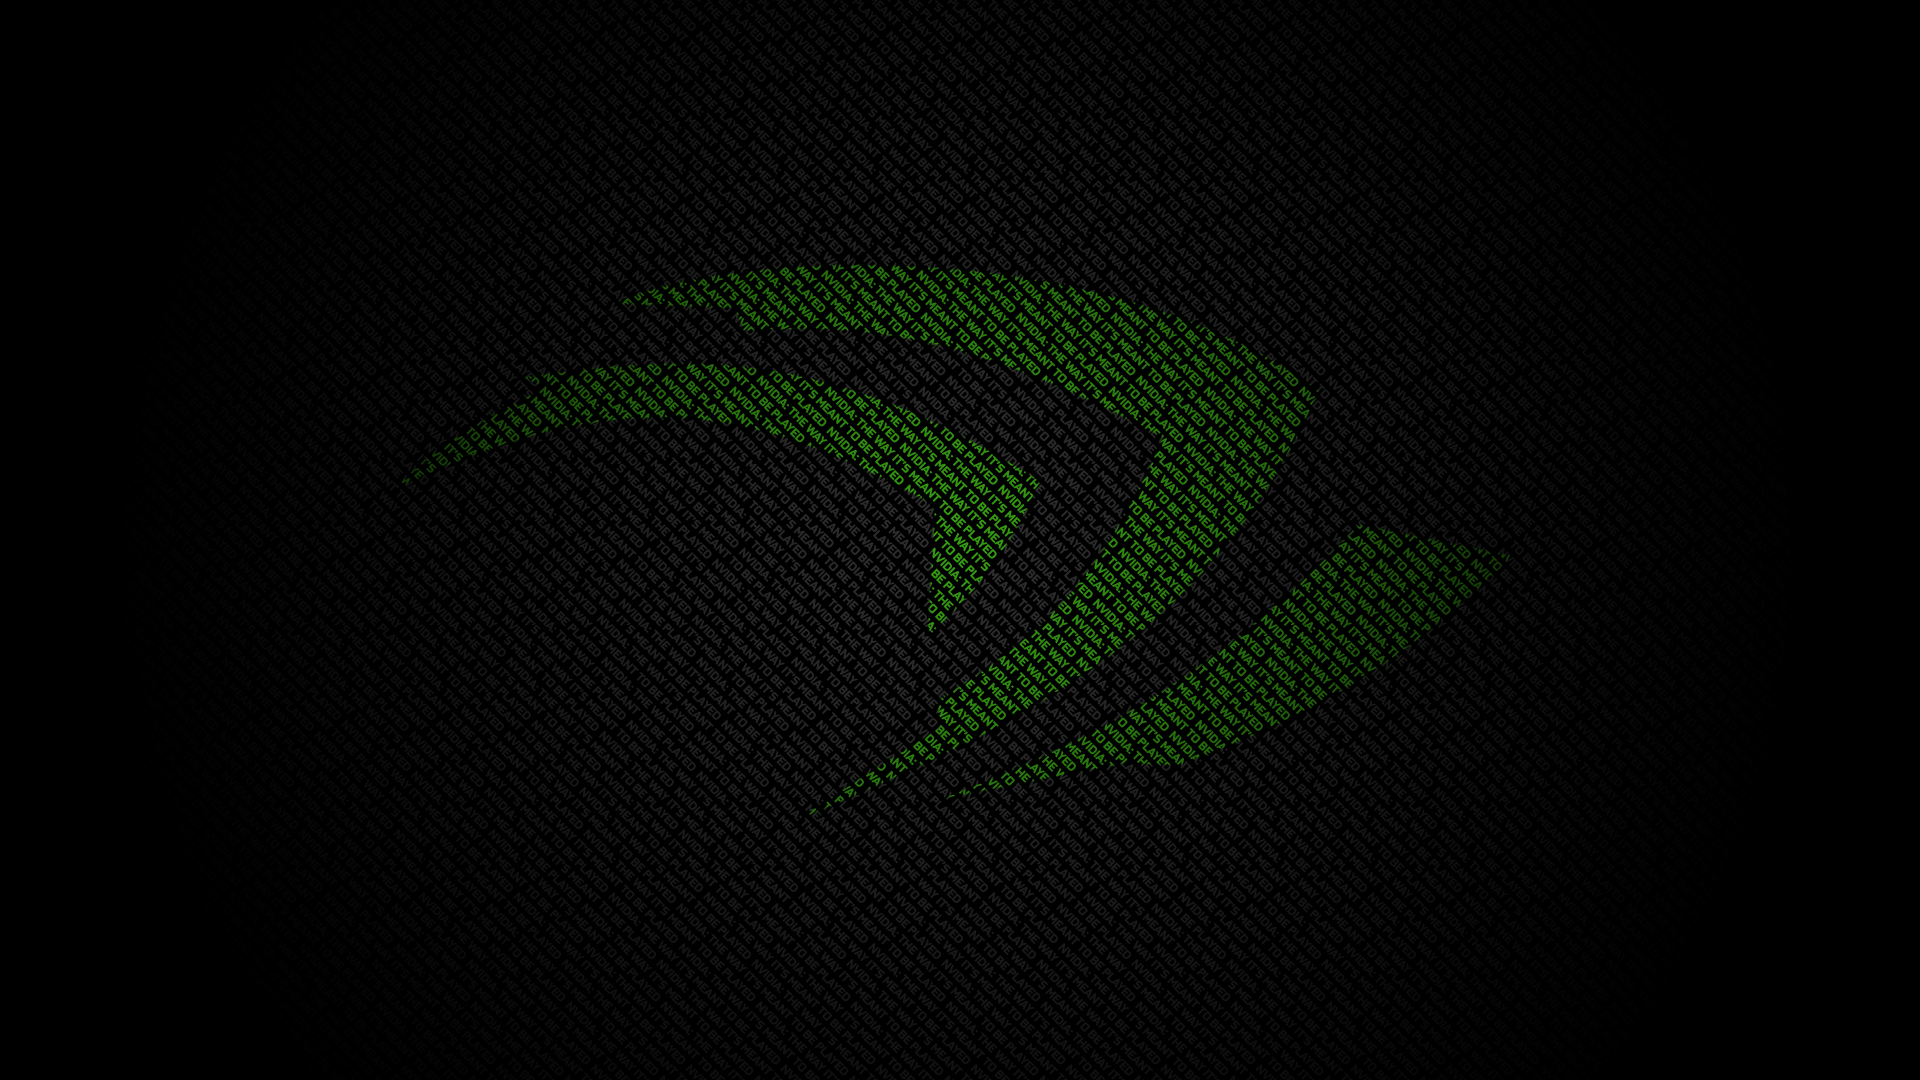 download Nvidia Backgrounds [1920x1080] for your Desktop 1920x1080